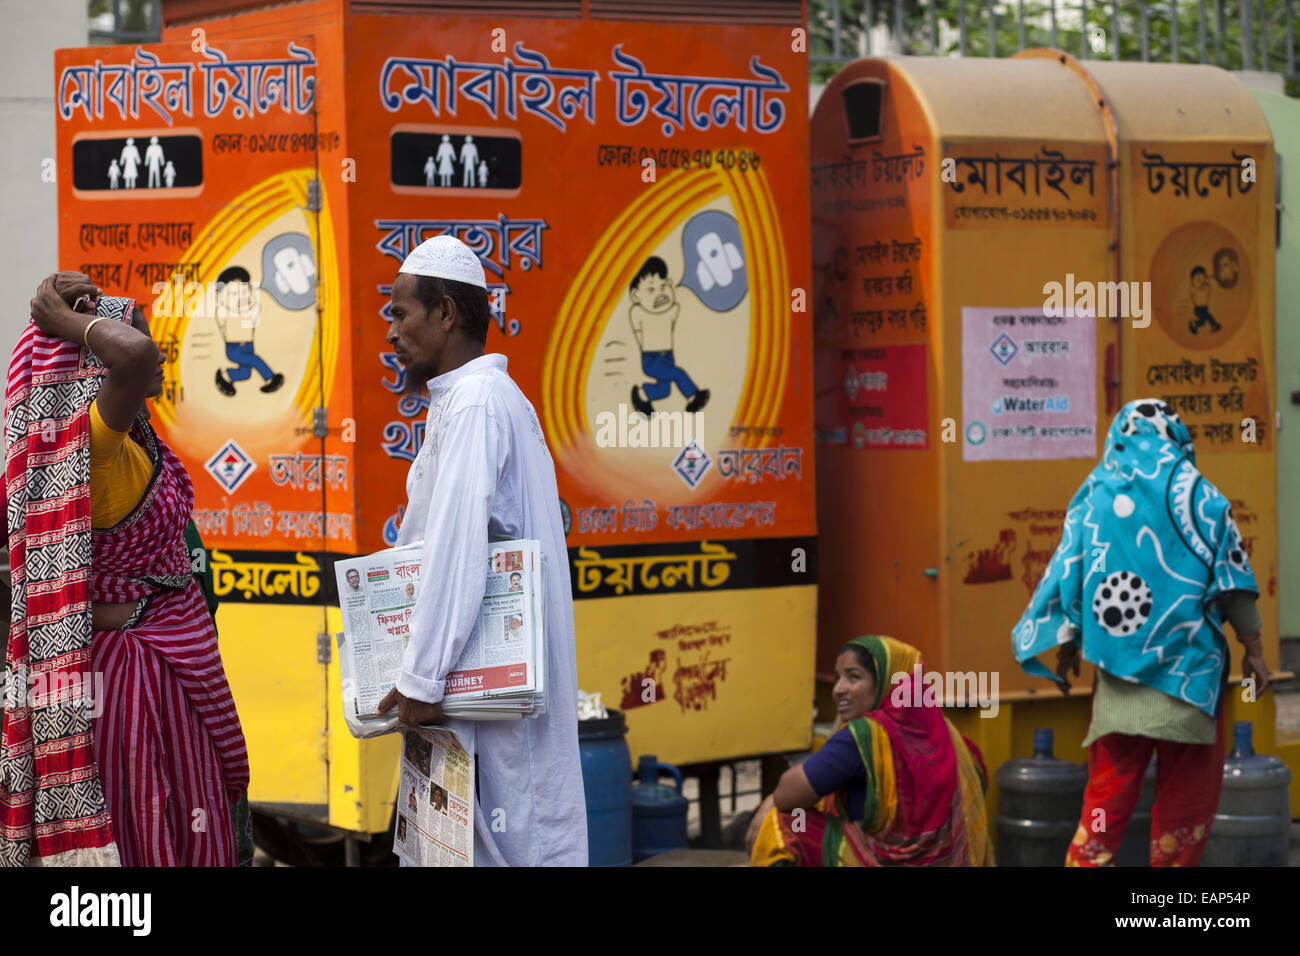 Dhaka, Bangladesh. 19th Nov, 2014. A paper saller making conversation with toilet cleaner infront of Itinerant Mobile - Stock Image